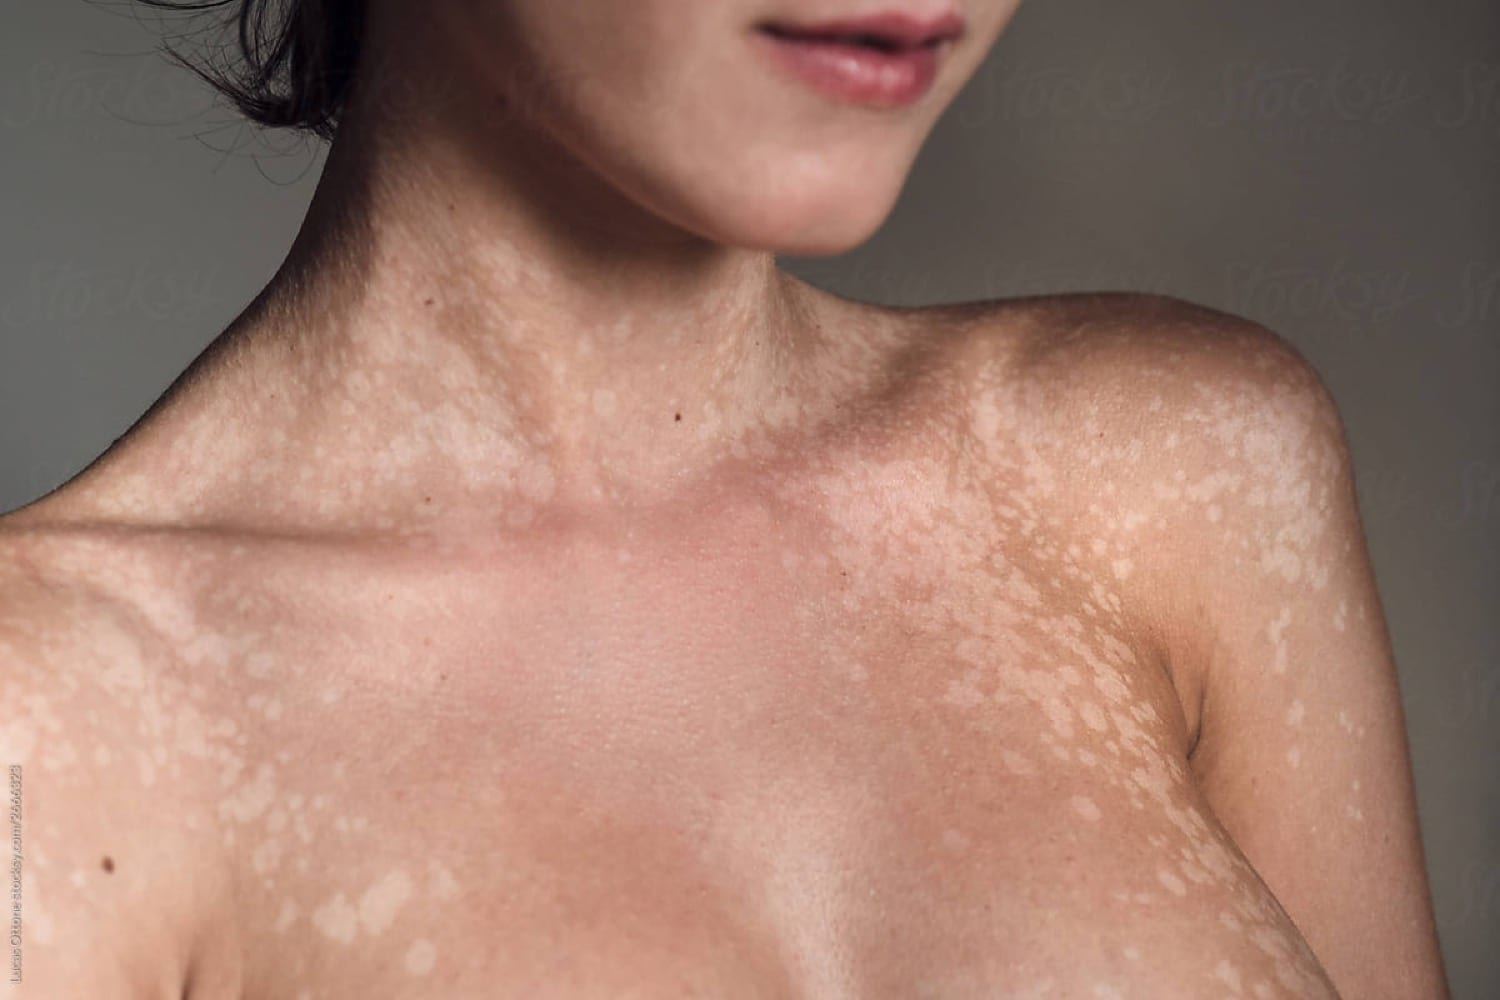 Tinea Versicolor is another skin condition that is successfully treated by Dr. Max Adler at Max Adler Dermatology in Plano TX